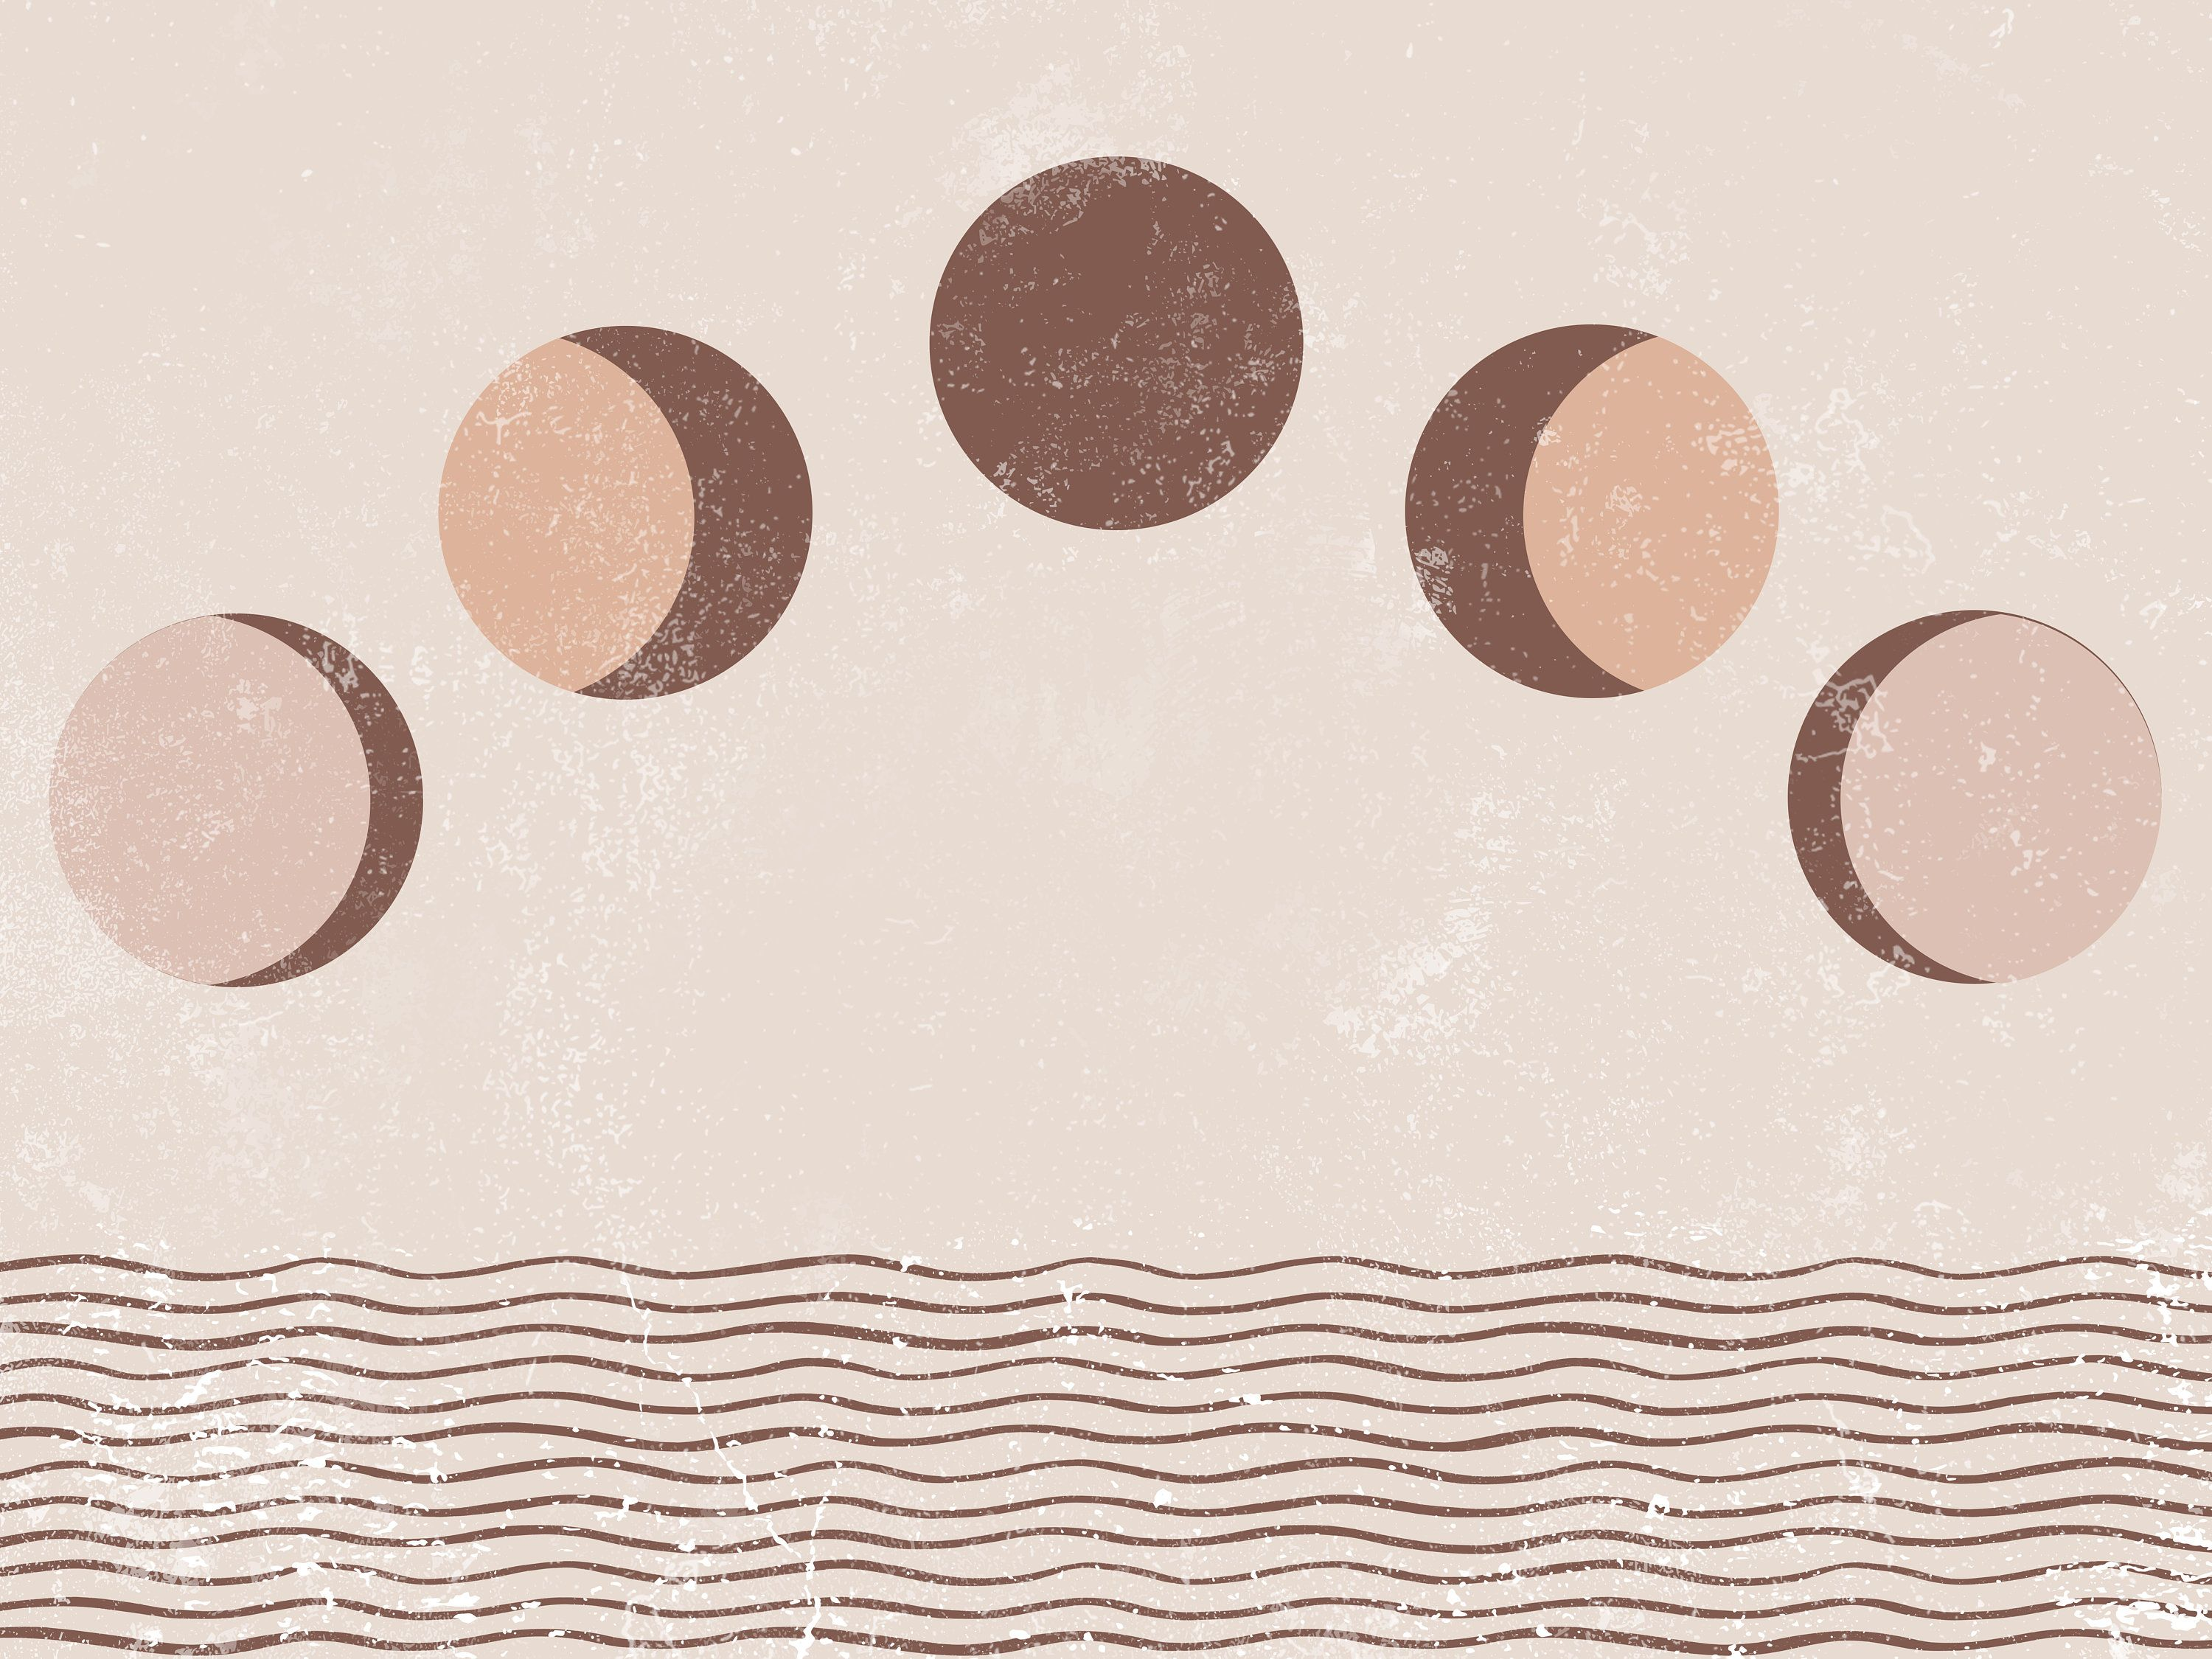 Minimalist Boho Aesthetic Wallpaper Dots Novocom Top Download, share or upload your own one! minimalist boho aesthetic wallpaper